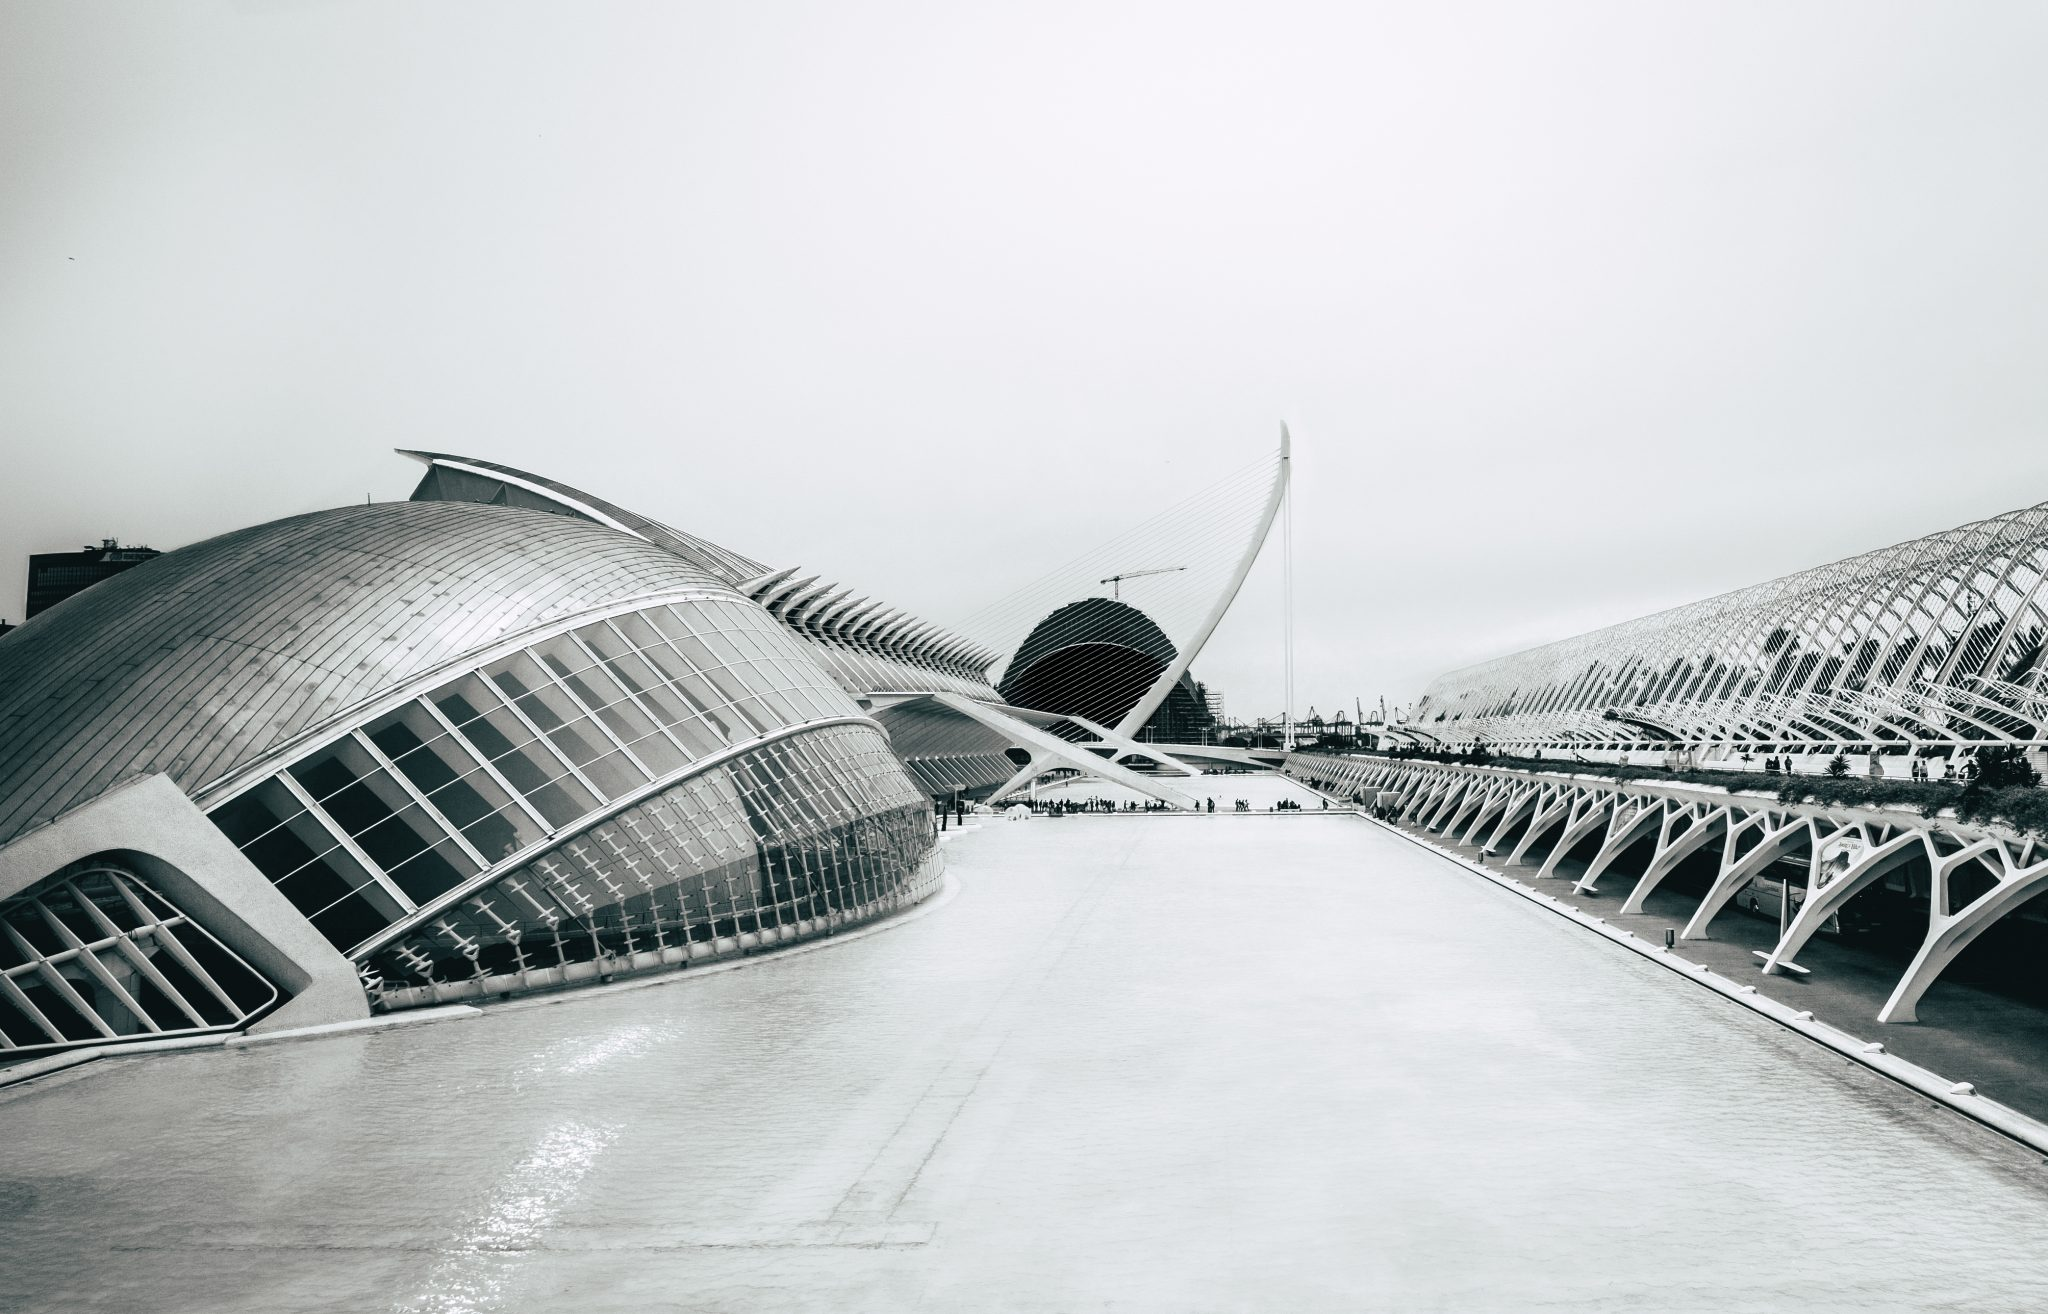 Panoramic view of the architectural complex The City of Arts and Sciences in the city of Valencia photo by Jo Kassis